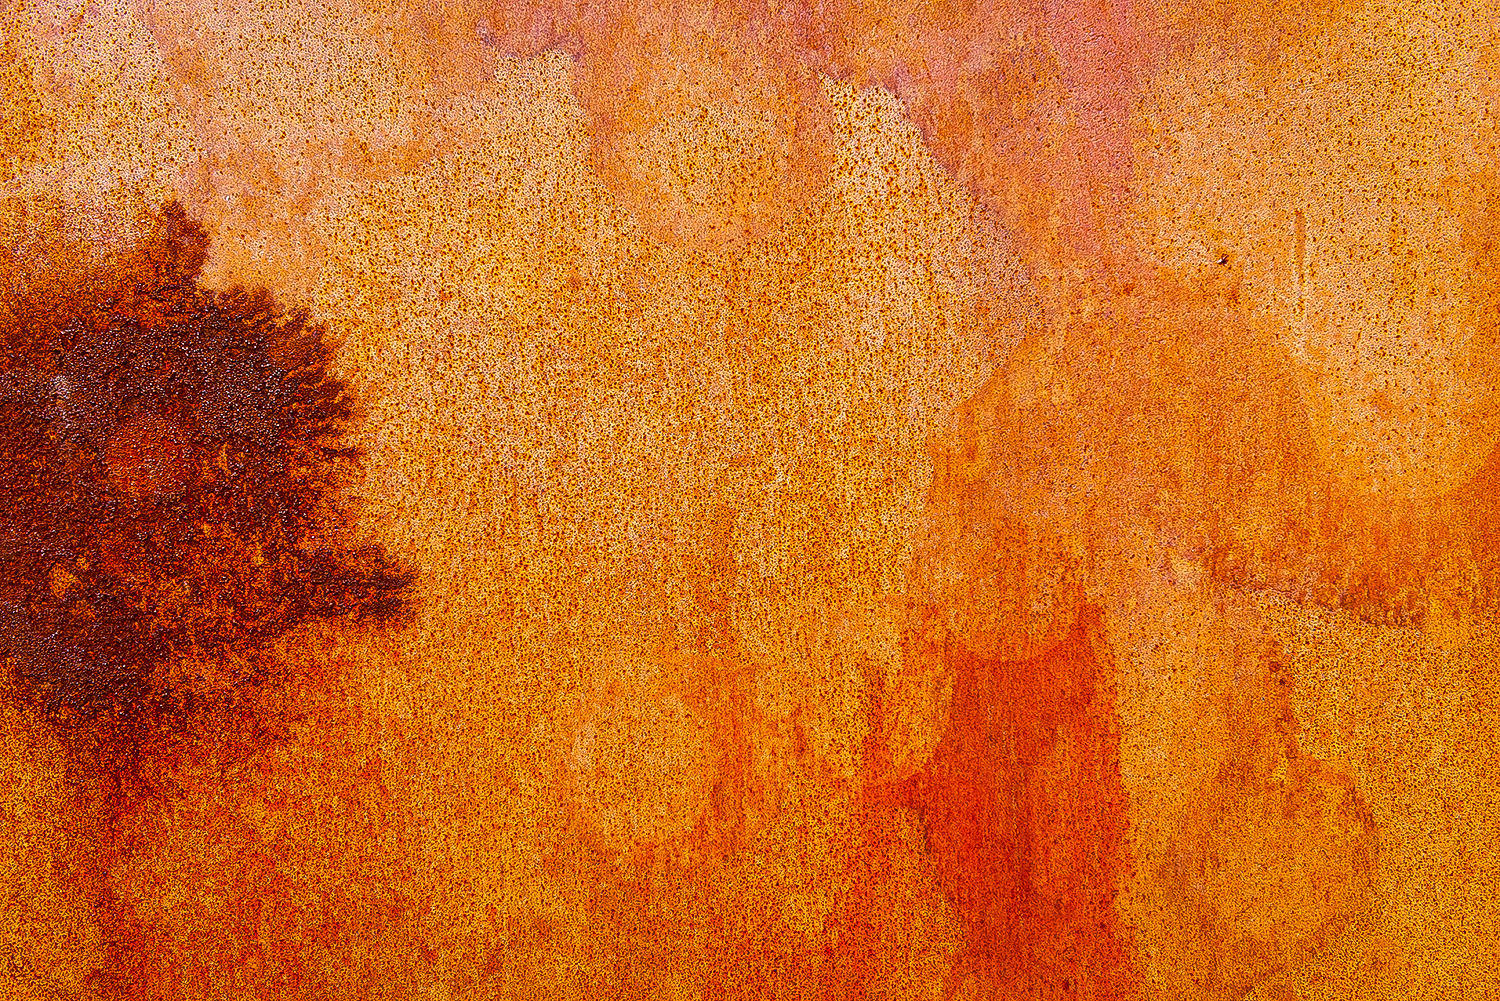 Orange Rust II